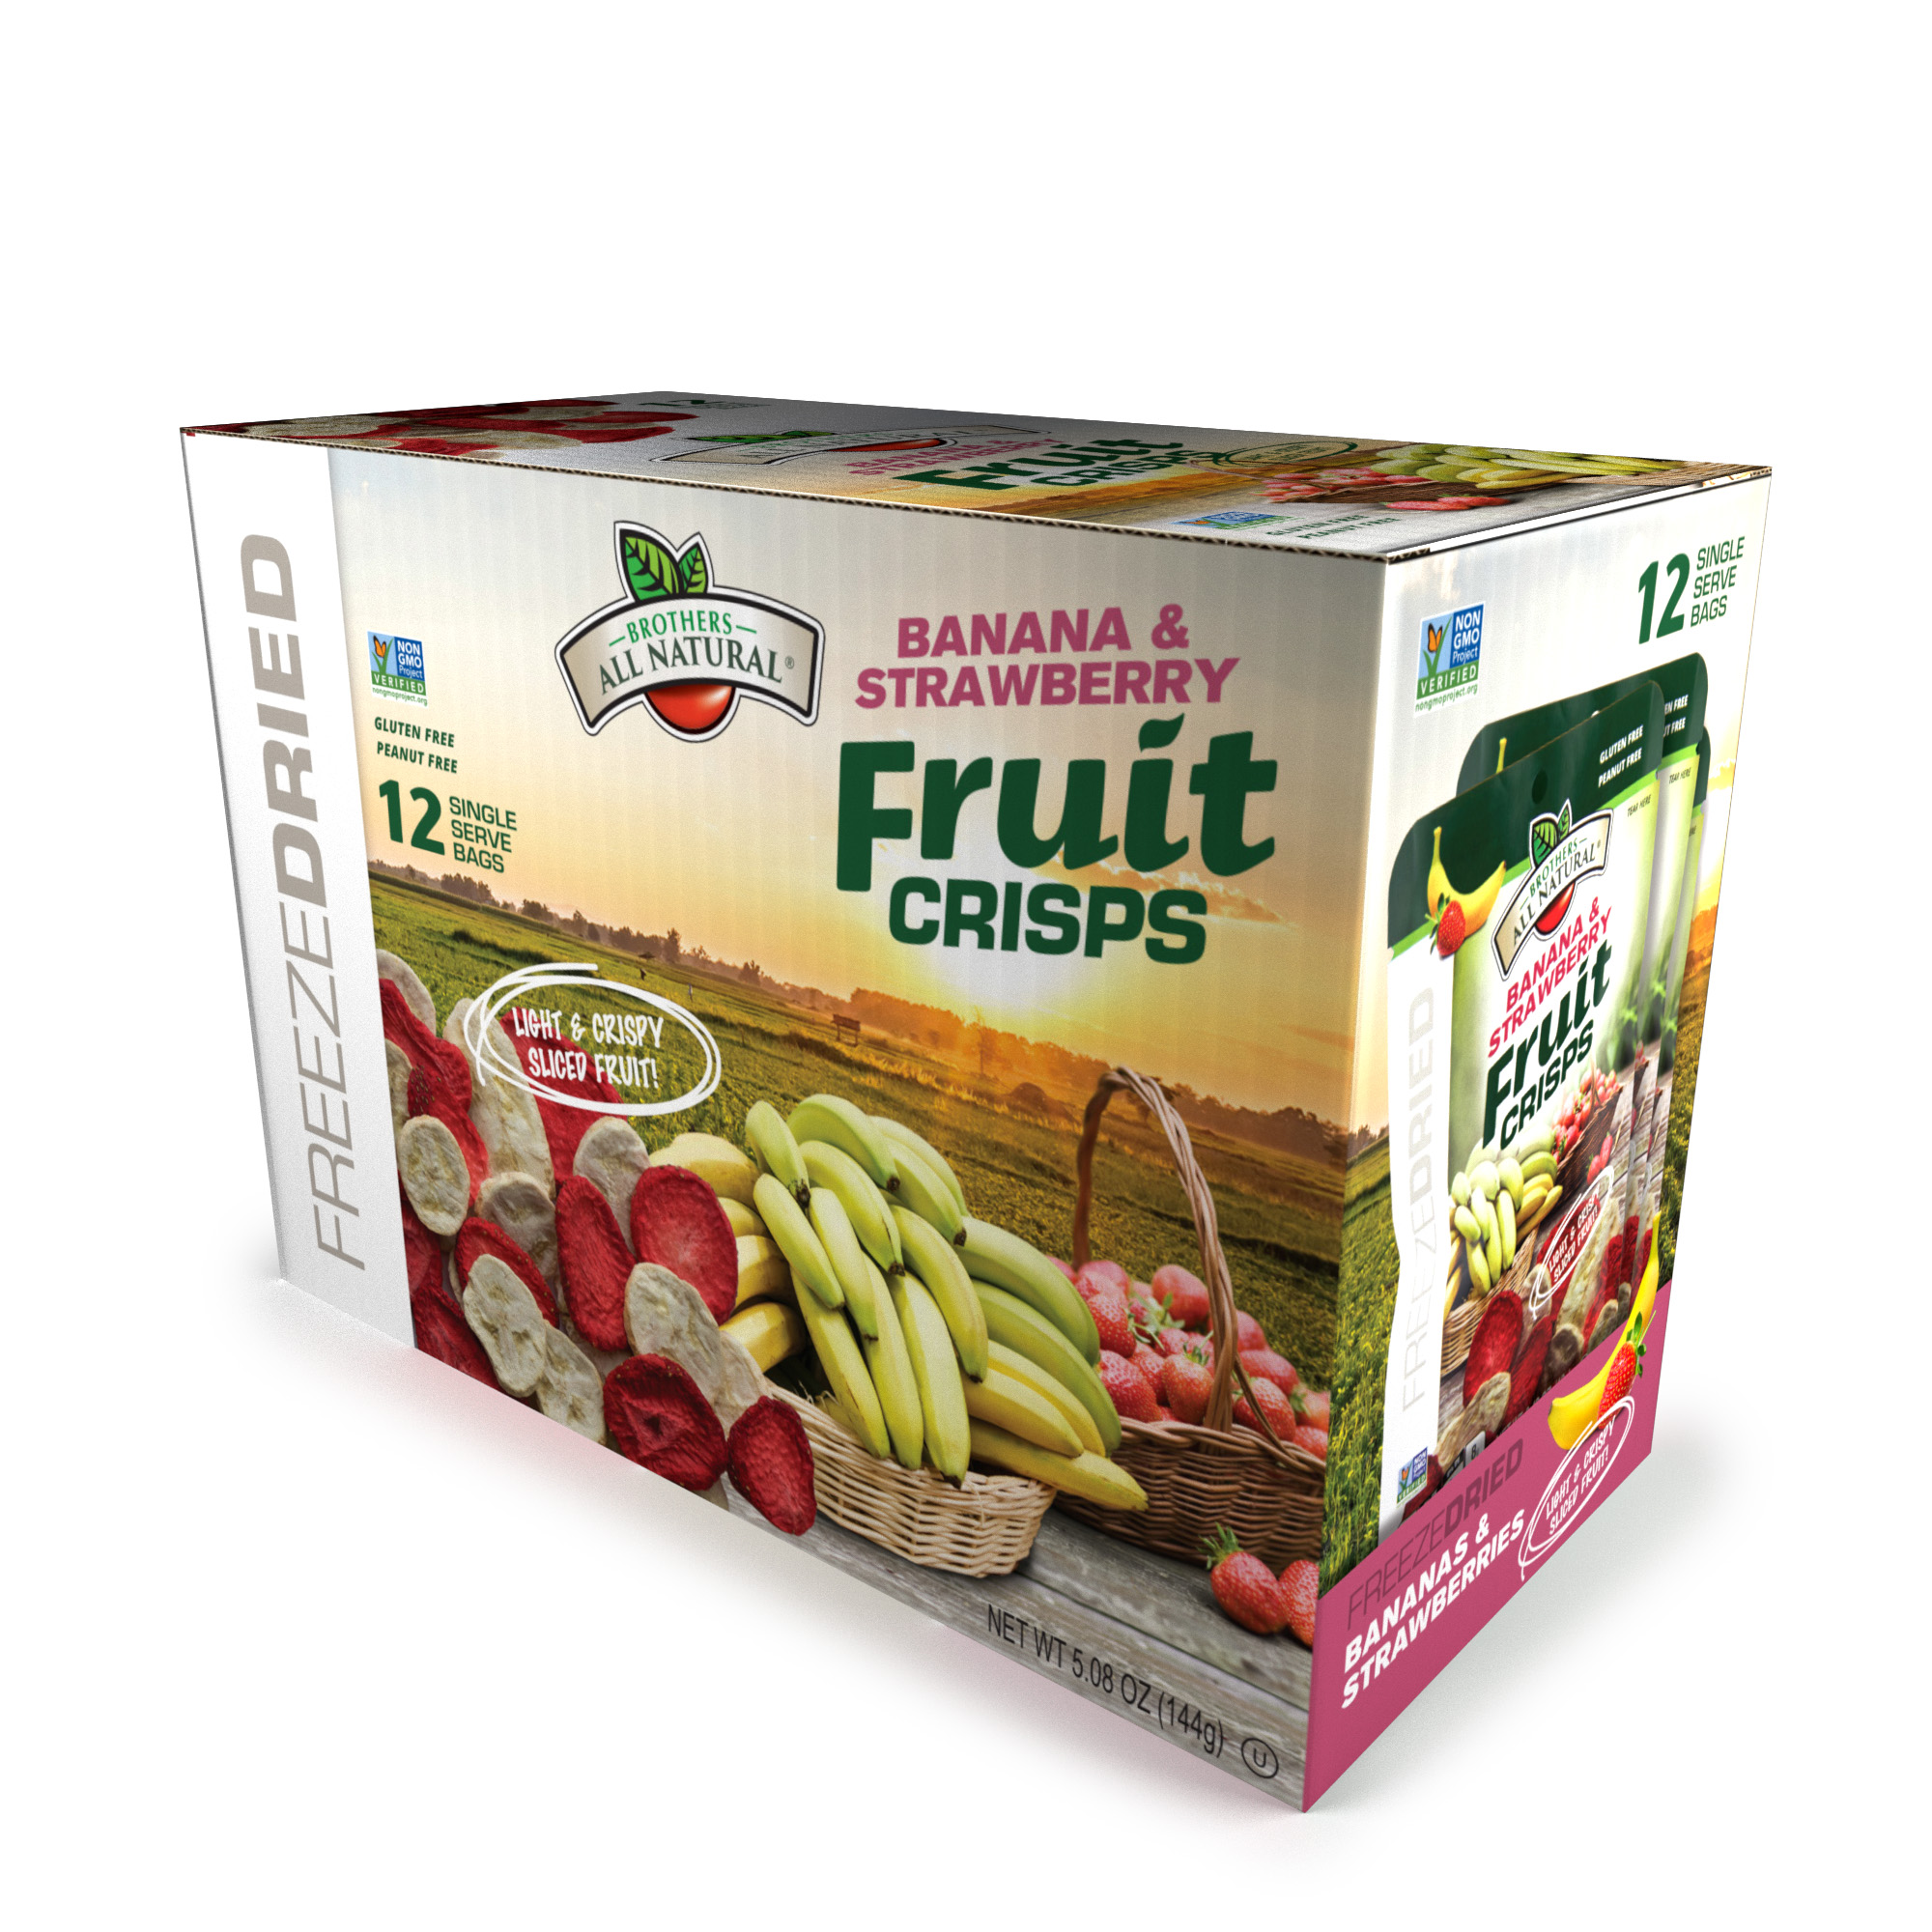 Brothers All Natural® Freeze-Dried Fruit Crisps, Strawberries and Bananas, 5.08 Oz, 12 Ct